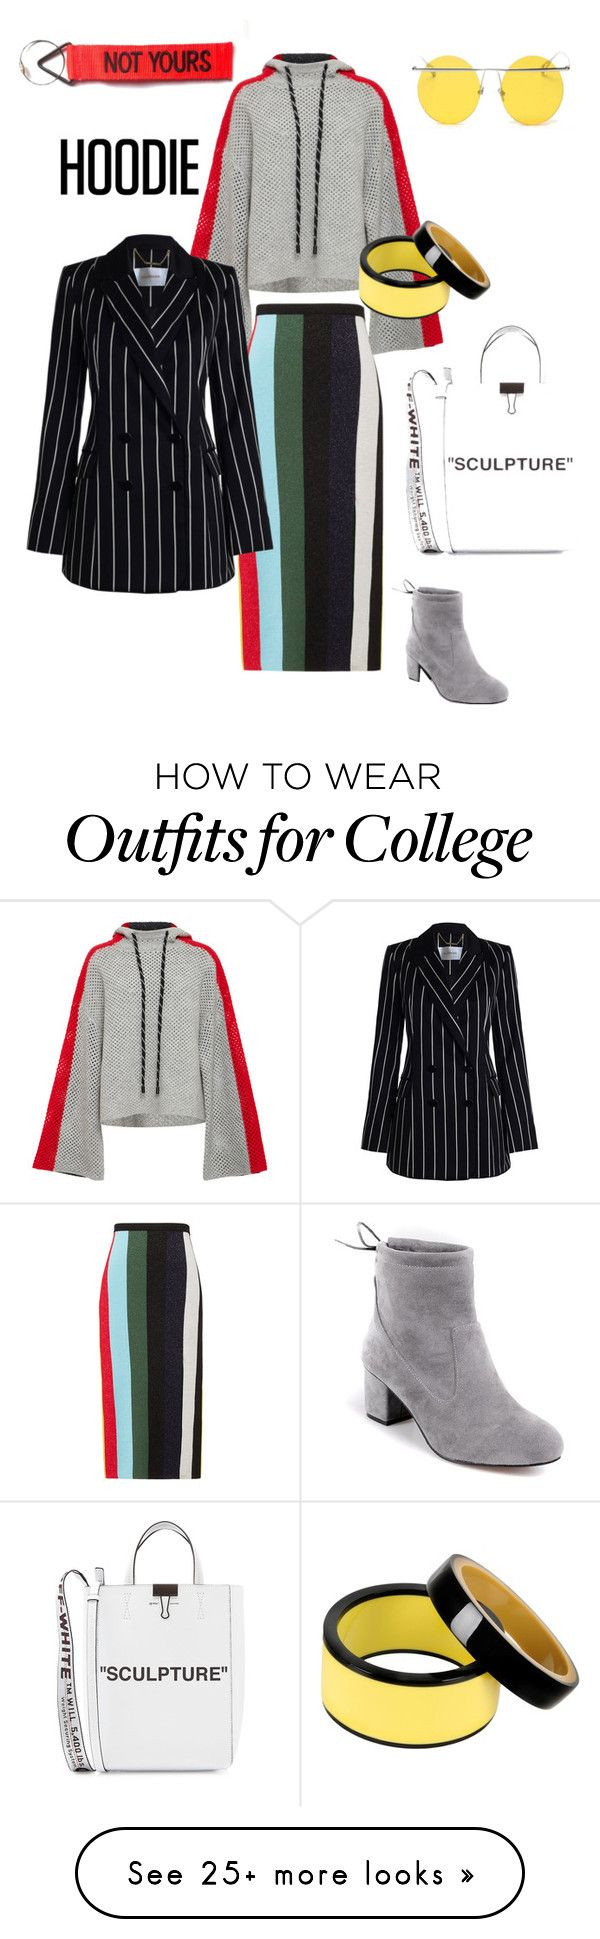 """""""Whoodie"""" by cocodetoile on Polyvore featuring Zoë Jordan, Marni, Off-White, Diane Von Furstenberg, Zimmermann, LMNT and Hoodies"""